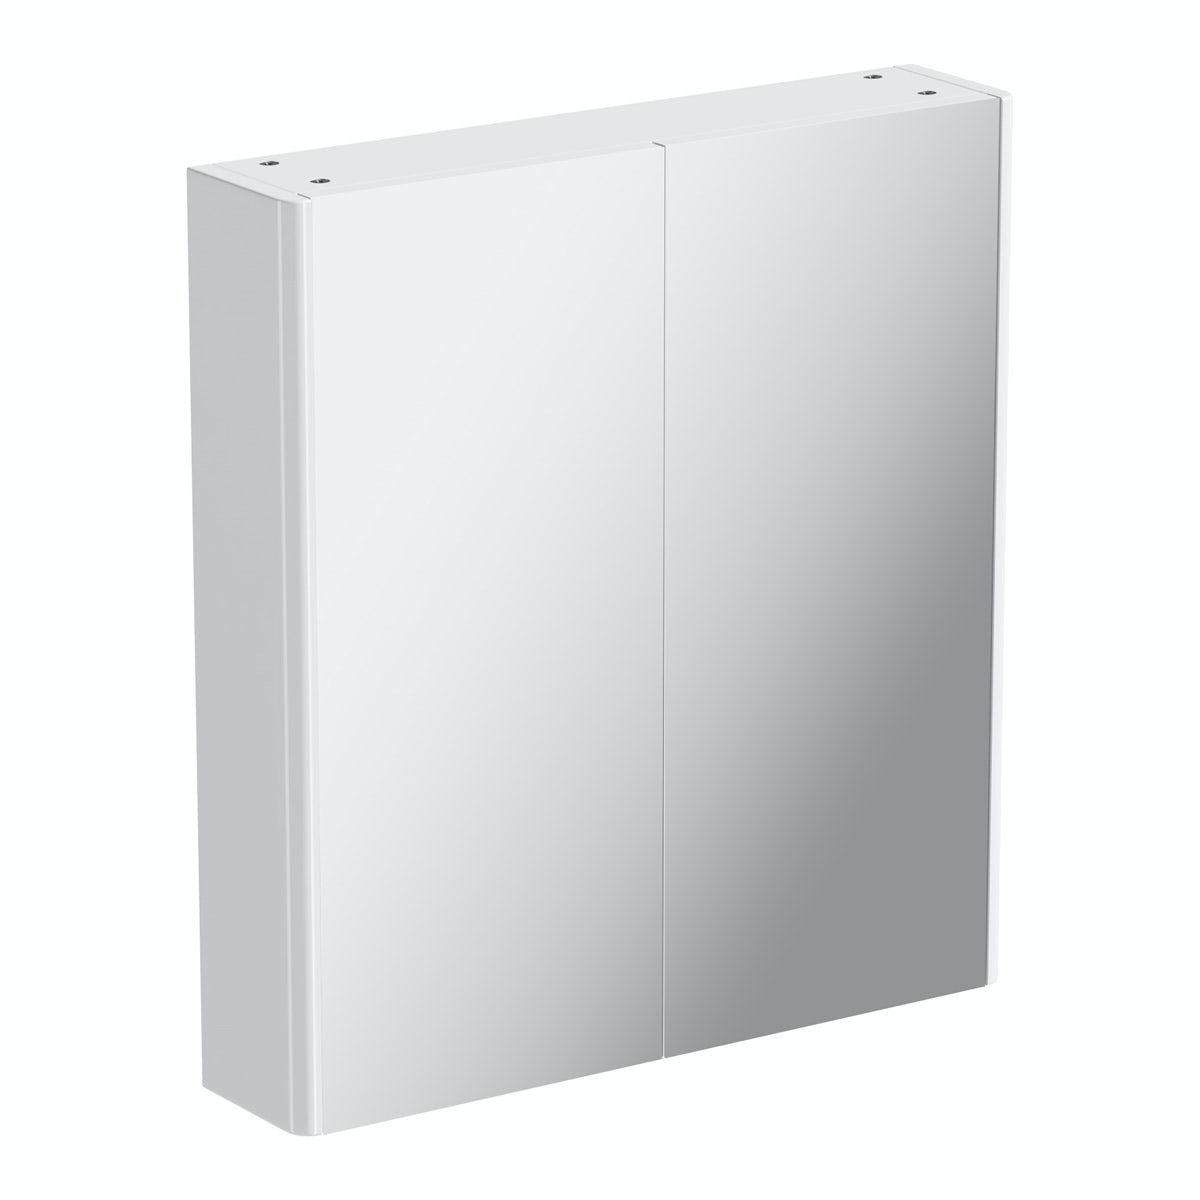 600mm white curved mirror cabinet